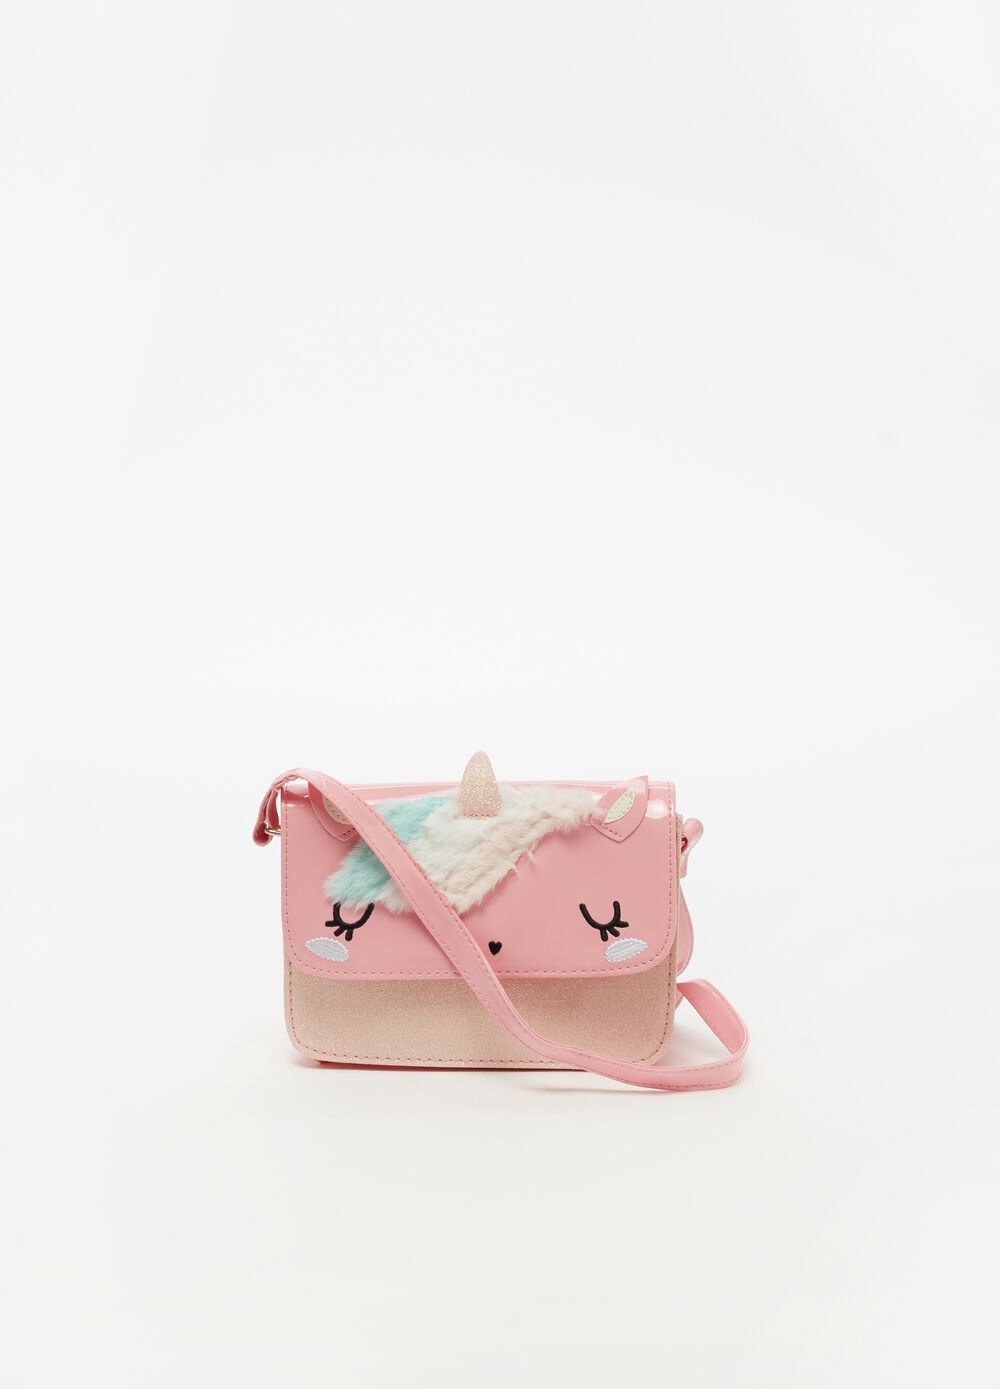 Shoulder bag with glitter and unicorn